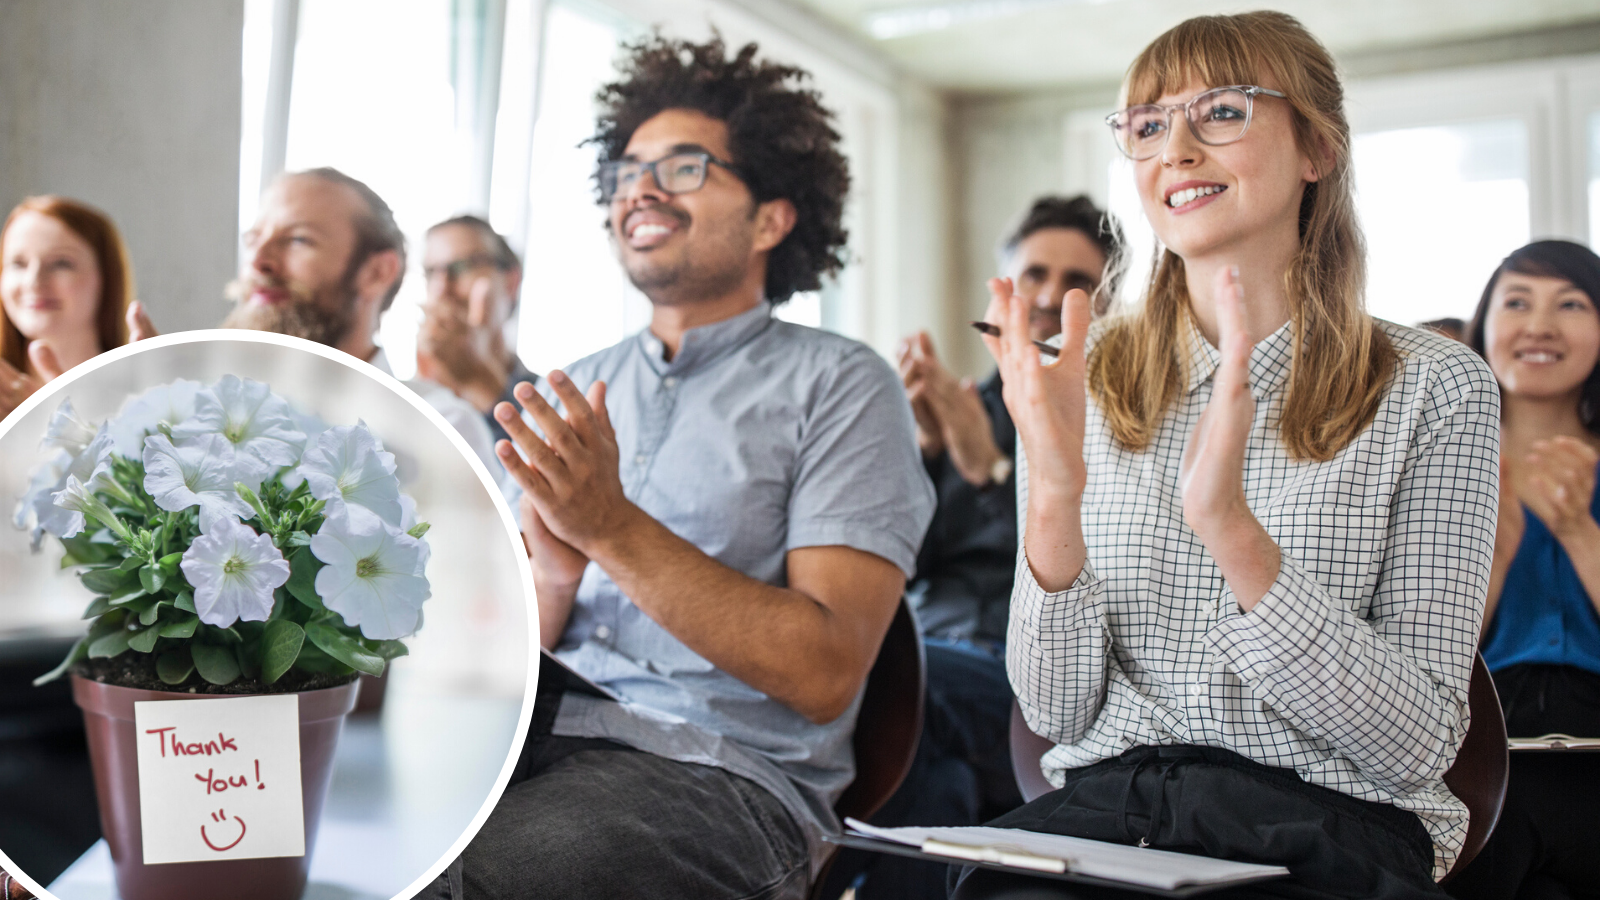 Bosses, take note: This is what employees want to be thanked for